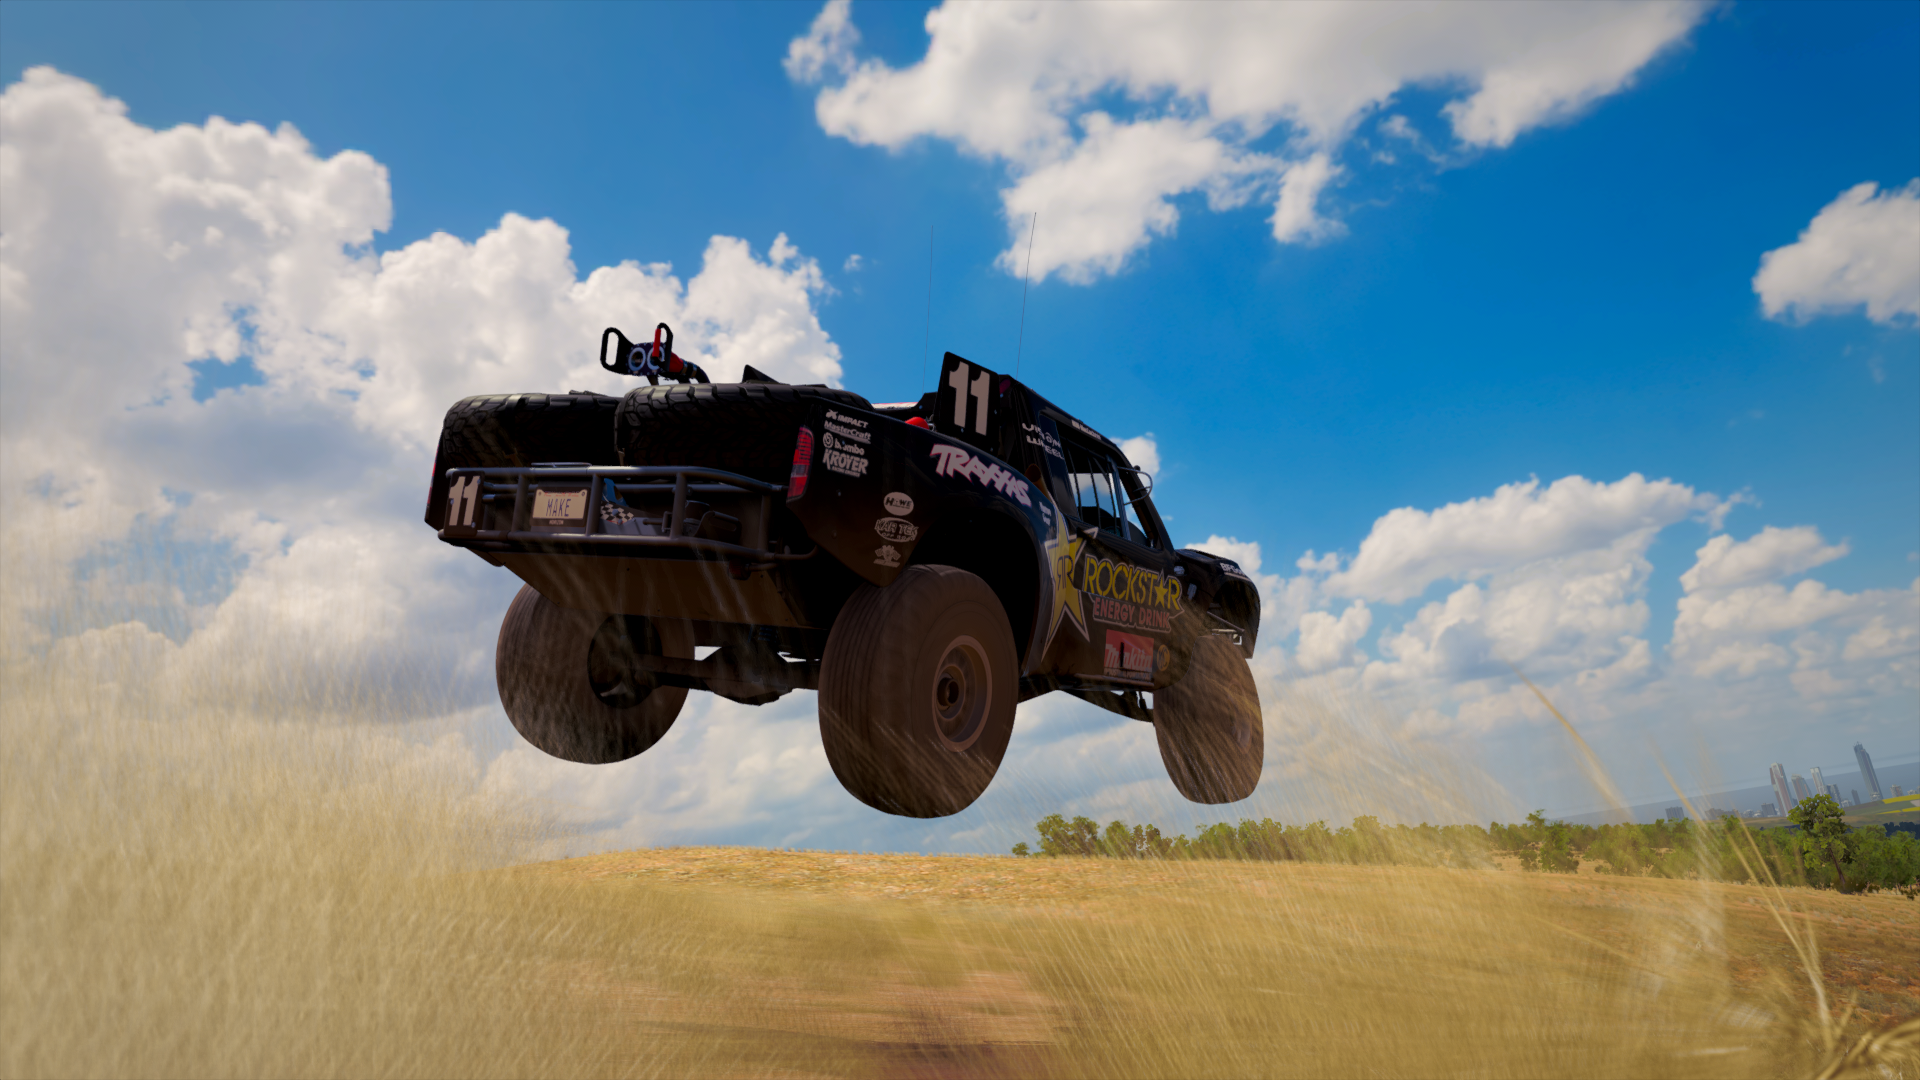 Trophy Truck On Rampage Hd Wallpaper Background Image 1920x1080 Id 916147 Wallpaper Abyss